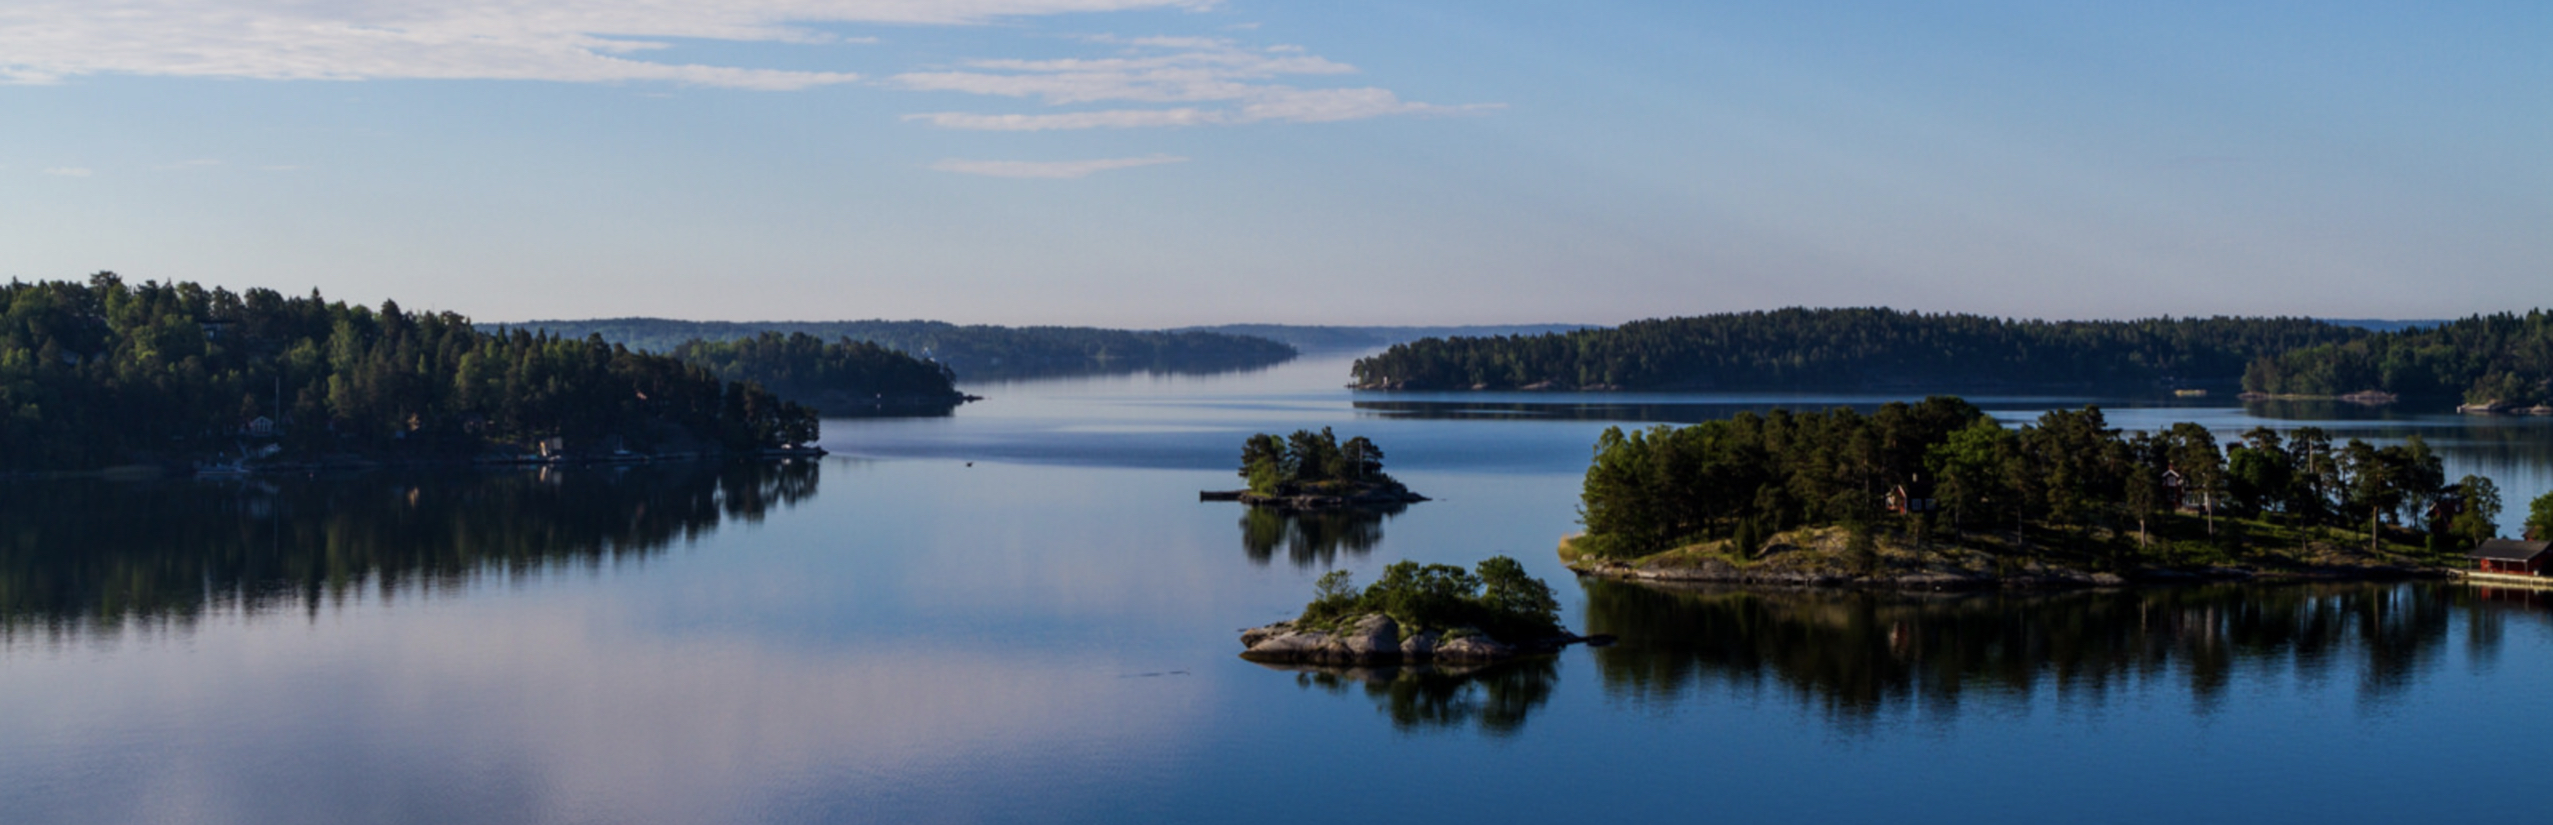 Nowhere to be seen: Stockholm's E4 bypass will tunnel under the straits of its archipelago.